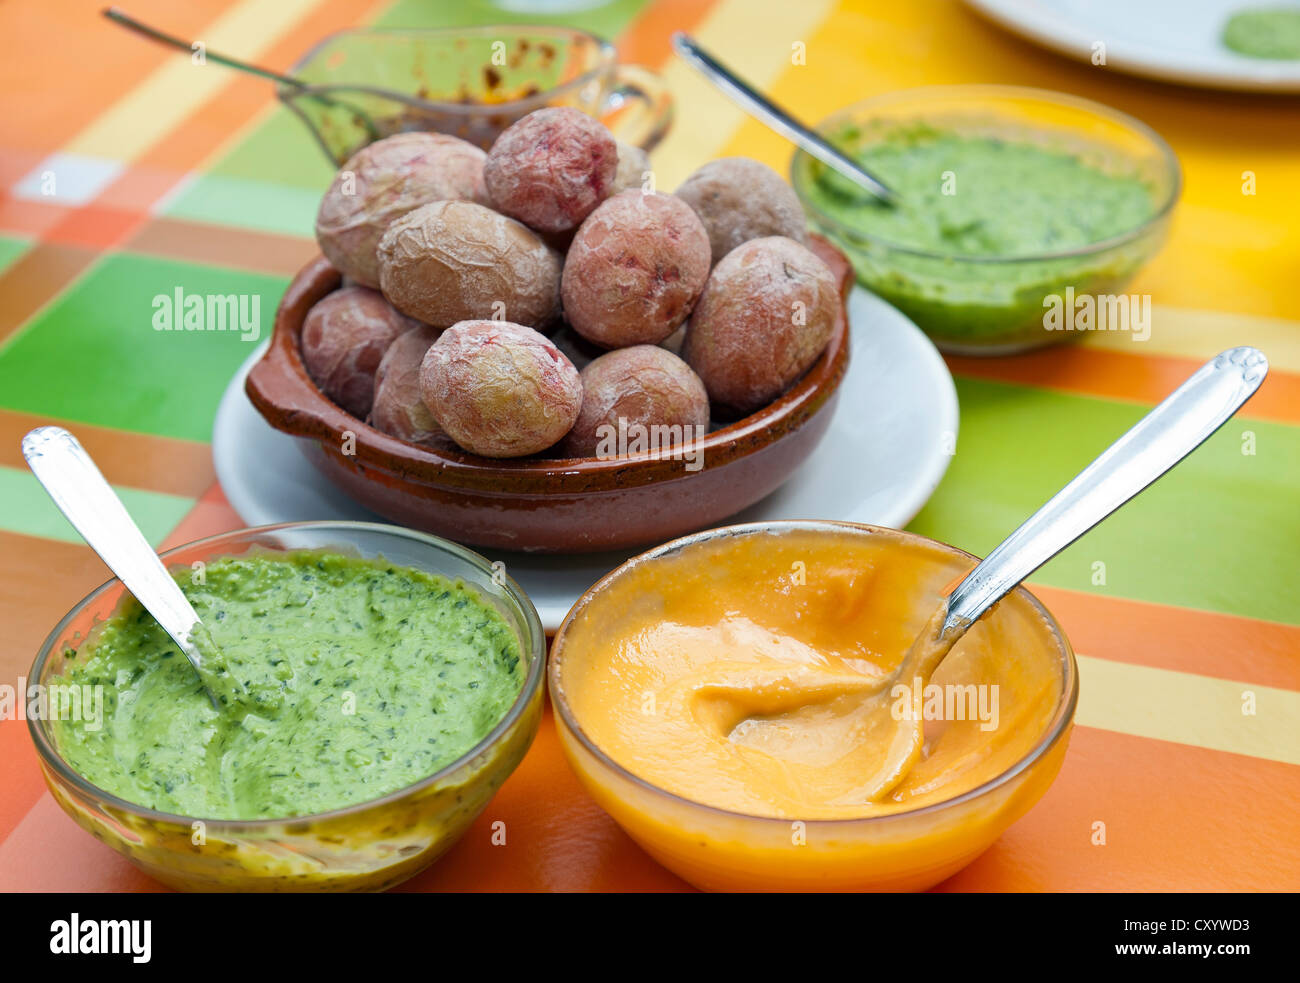 Potatoes with mojo sauce, typical dish from the Canaries, Tenerife, Canary Islands, Spain, Europe - Stock Image